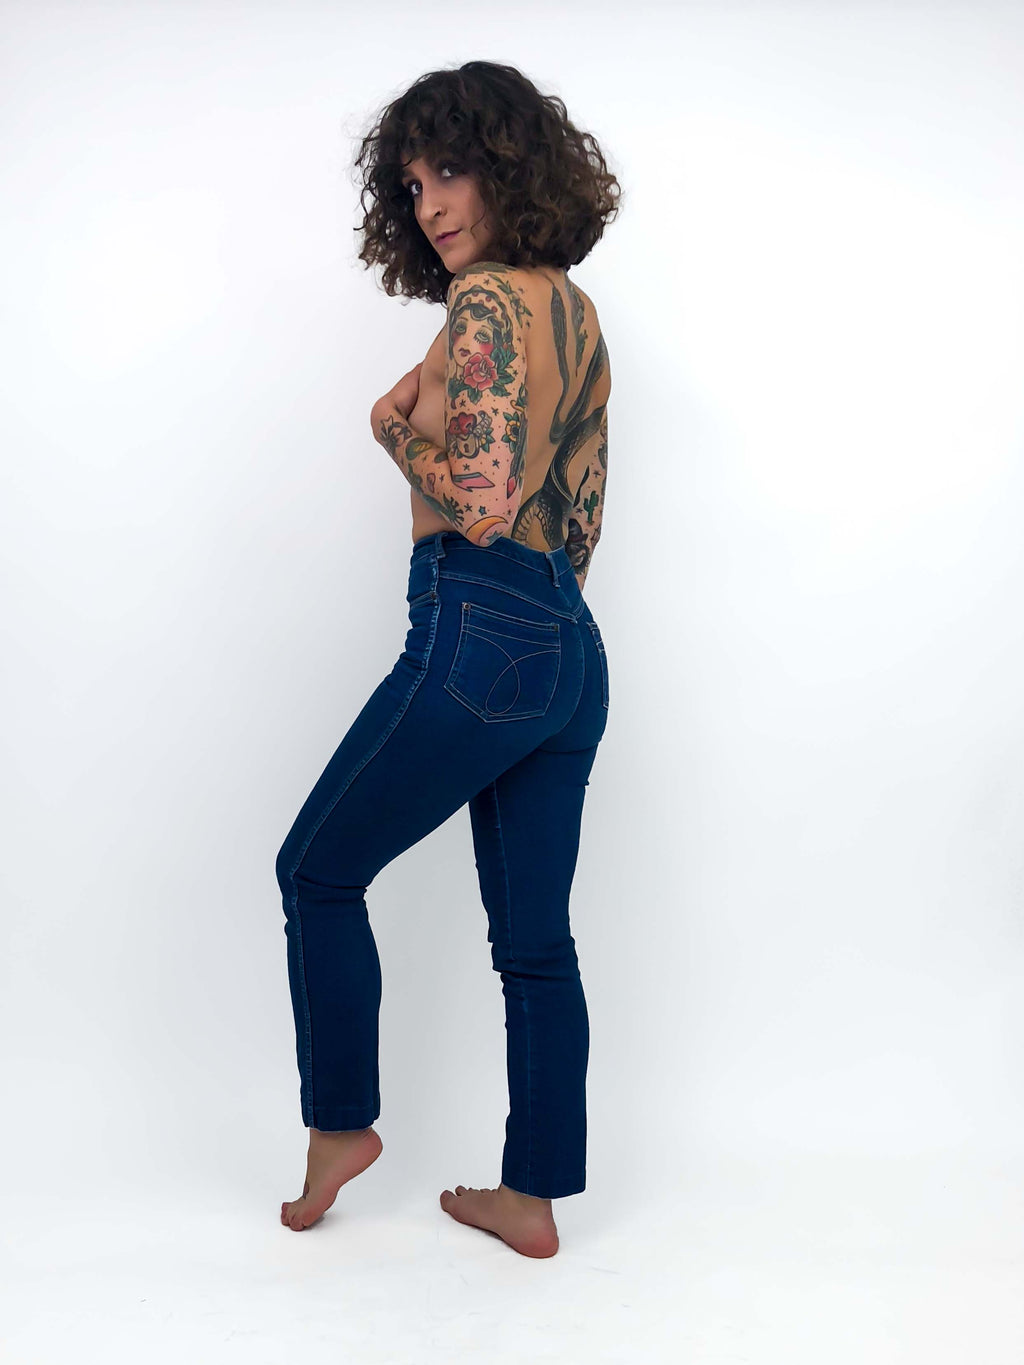 Vintage Dark Denim High Waisted Jeans : XS Small : The Calvins